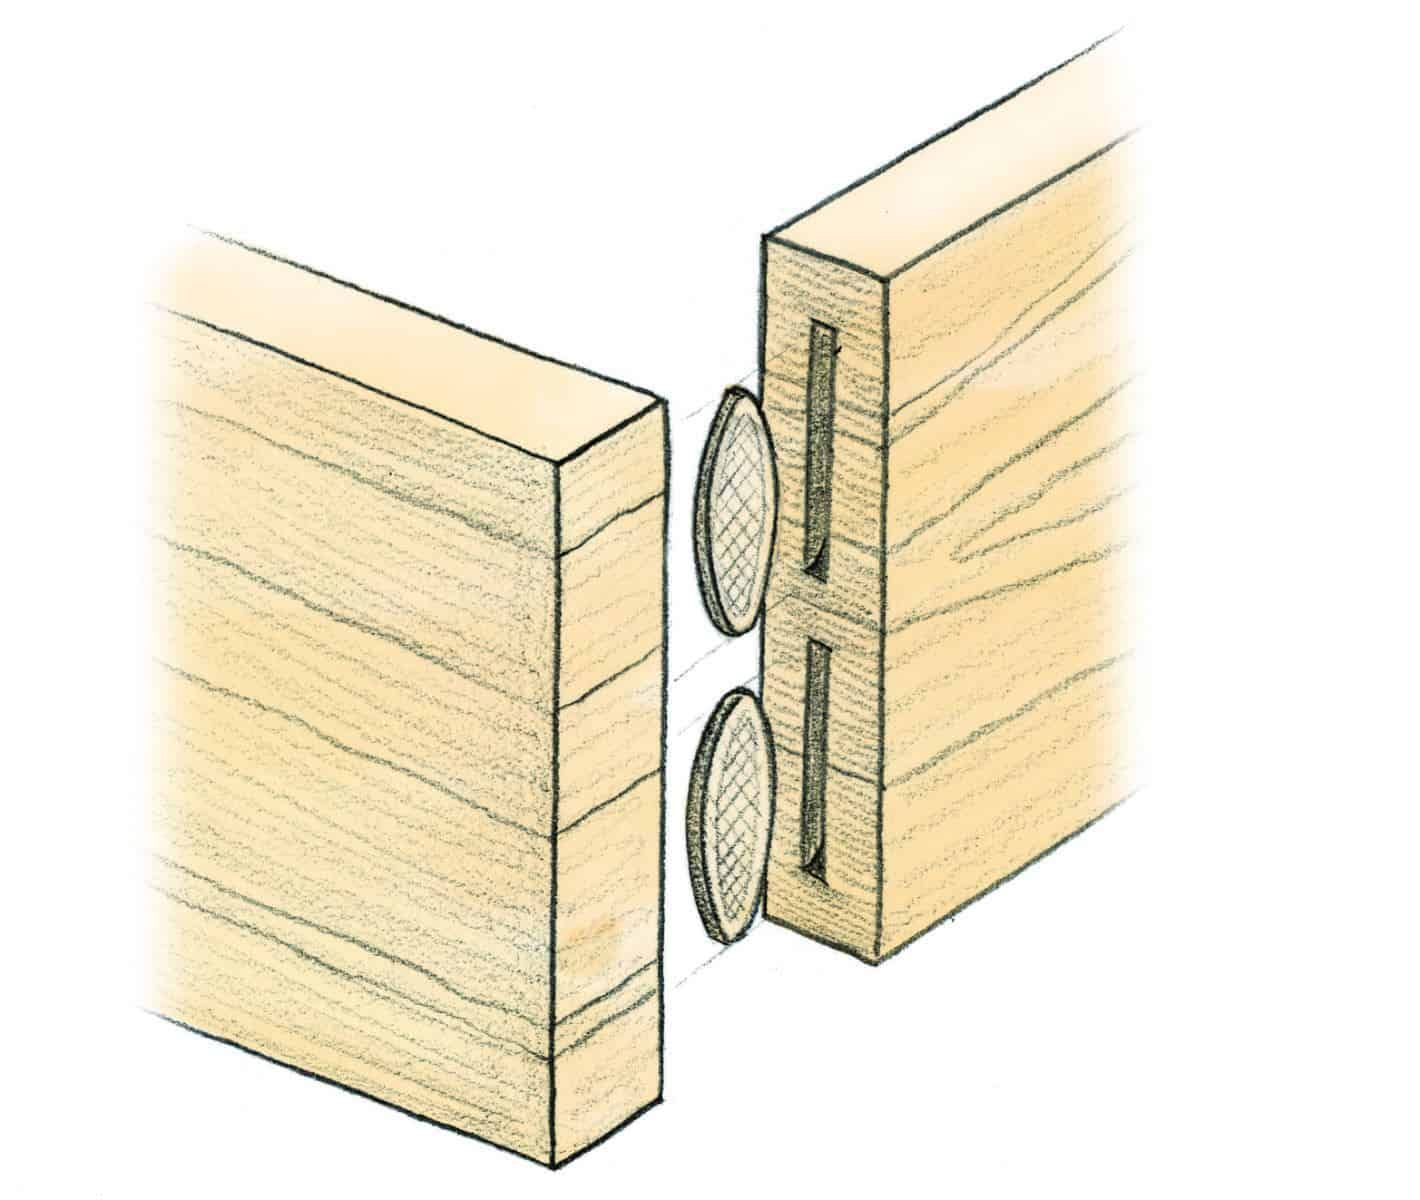 Common Types Of Wood Joints You Should Know Woodworking Wood